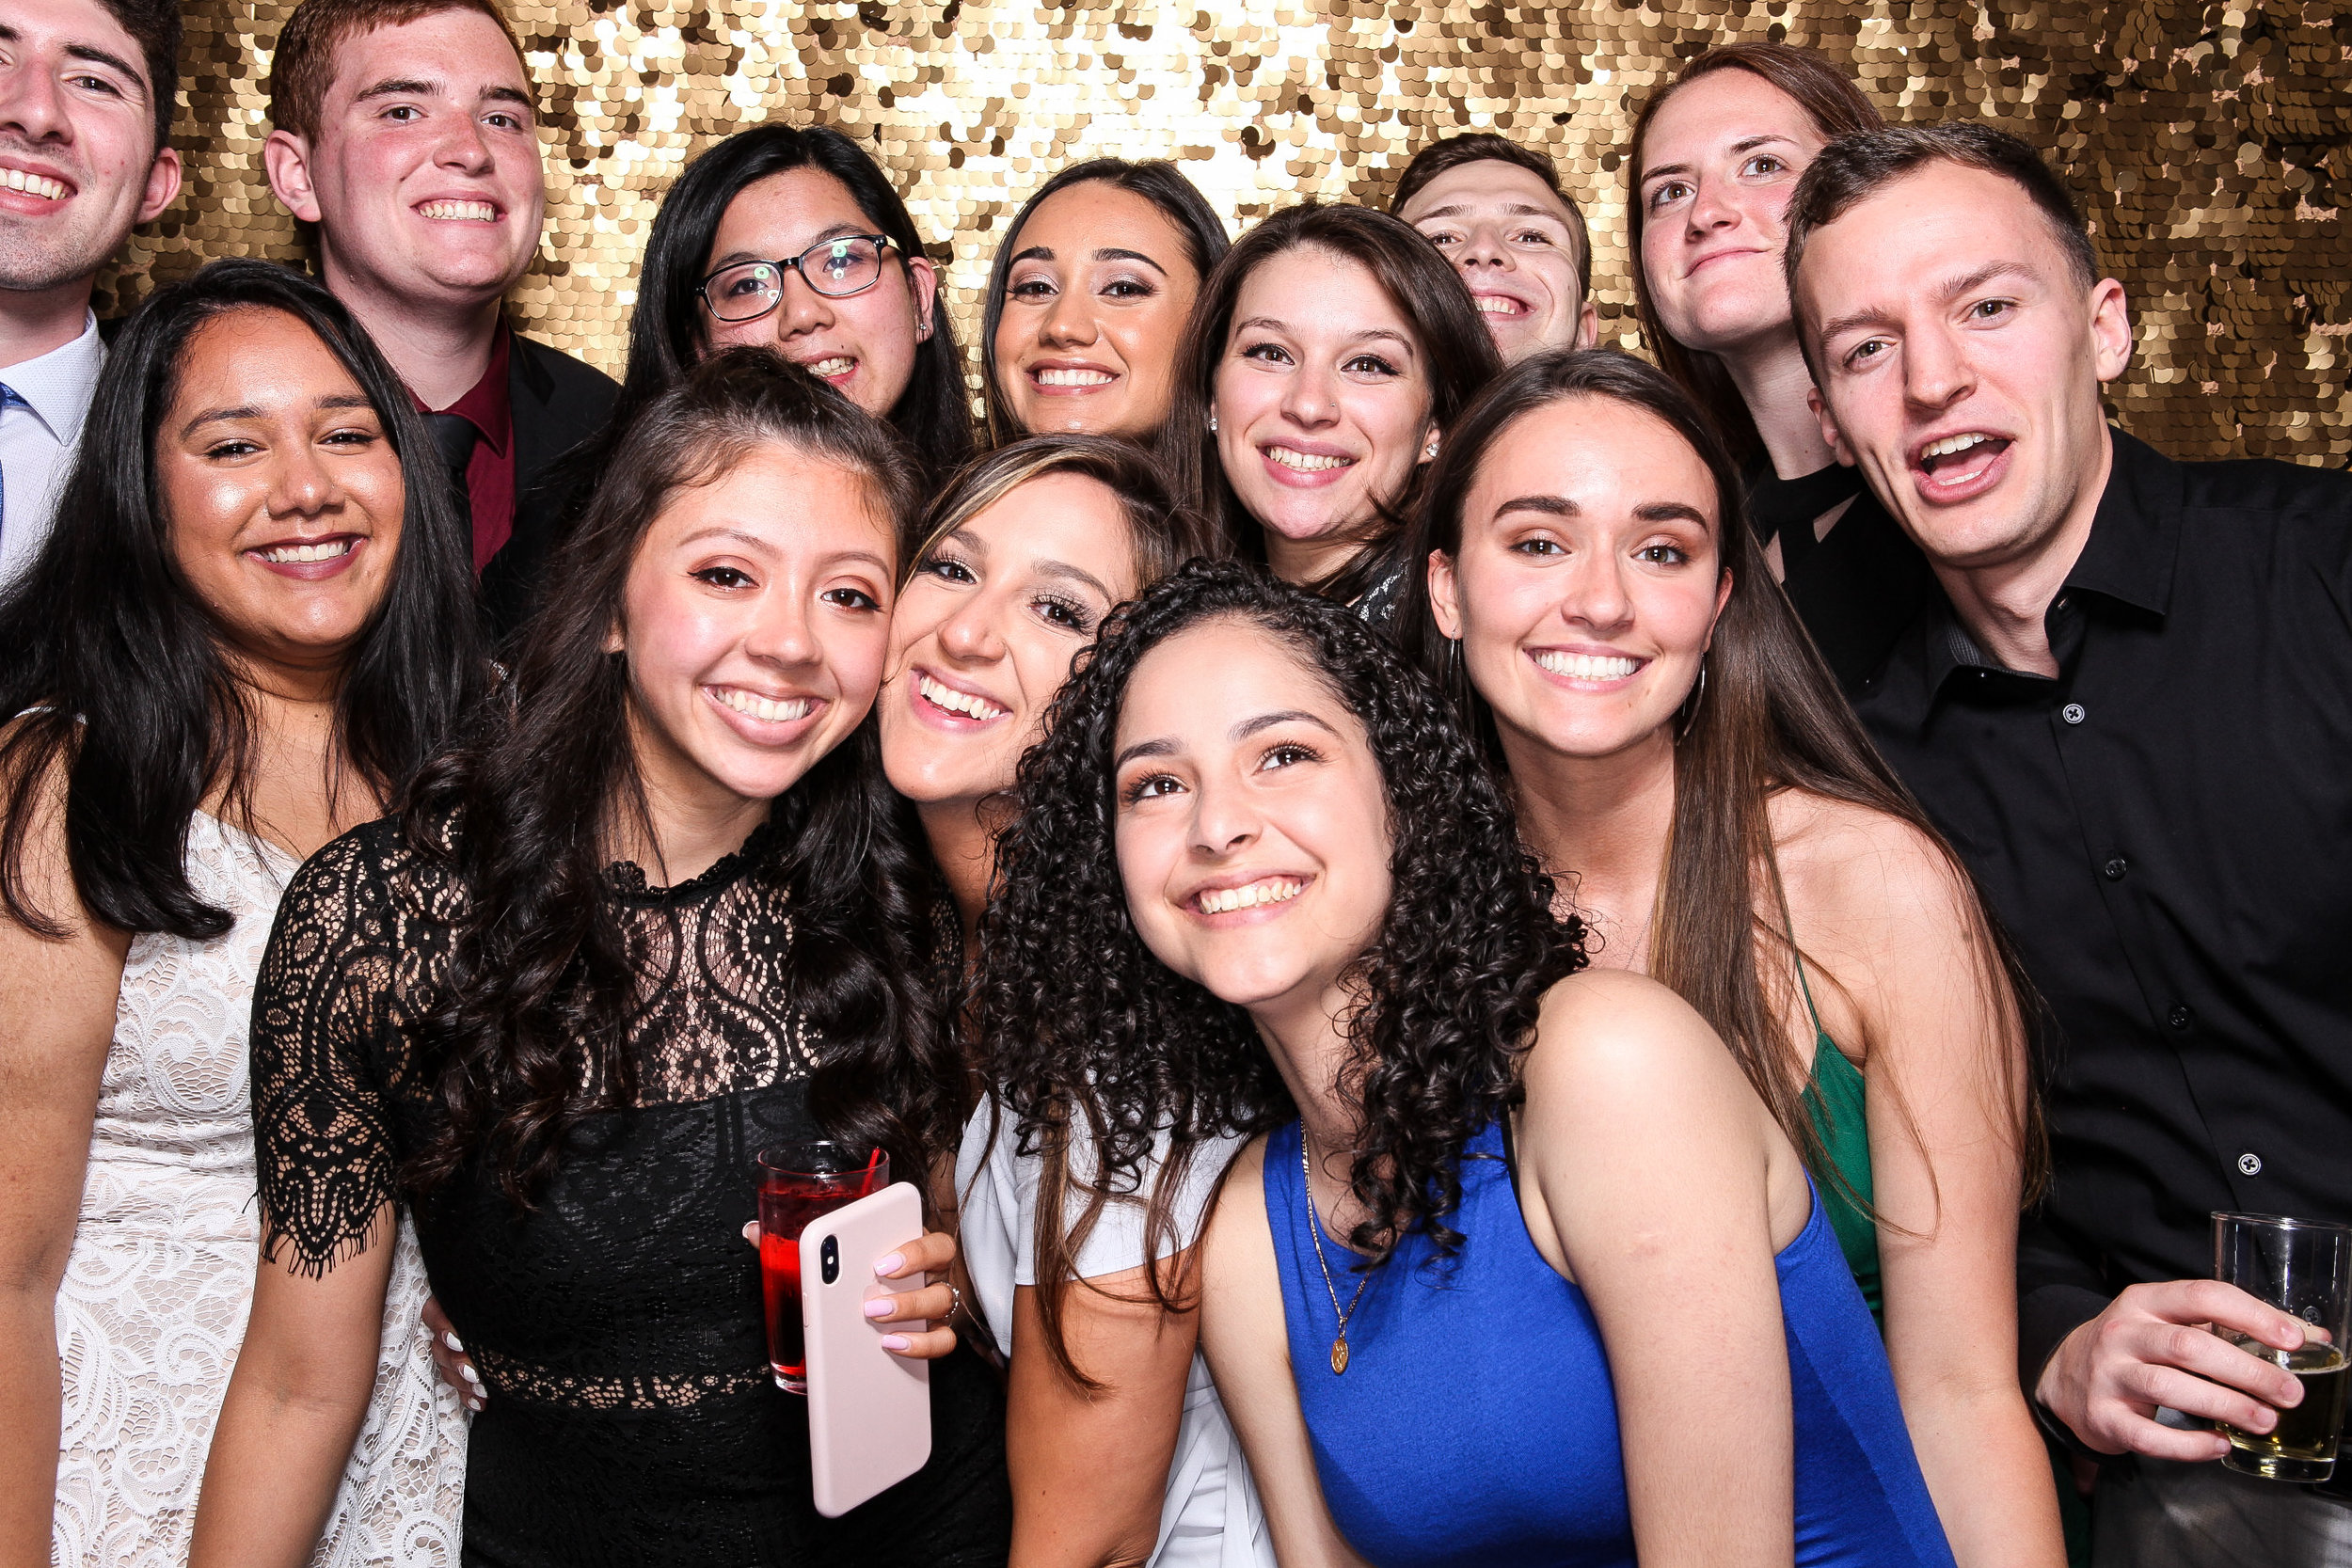 20190503_Adelphi_Senior_Formal-384.jpg